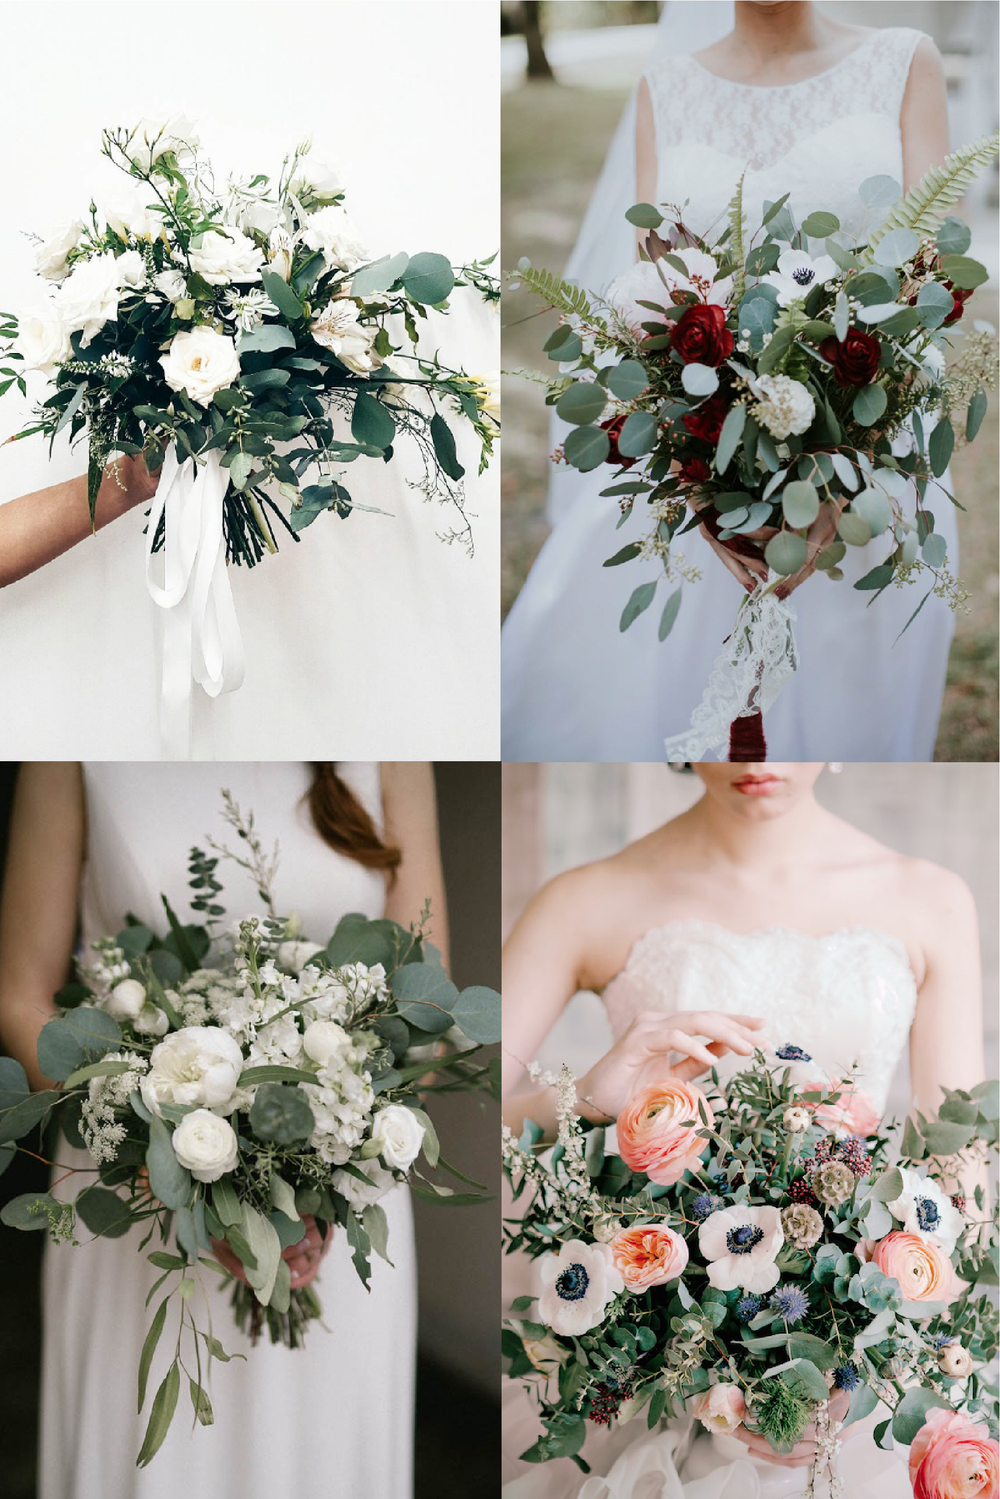 FROM CLOCKWISE, FROM TOP LEFT:  FLOWERS BY  LIME TREE BOWER  ;  FLOWERS BY  OH DARLING EVENTS  AND PHOTO BY  EMILY MAGERS ; FLOWERS BY  KRISTINA KABERNE  AND PHOTO BY   IRINA KLIMOVA ; FLOWERS BY   BLOMMA FLORAL AND DESIGN  AND PHOTO BY   SALLY O'DONNELL PHOTOGRAPHY .